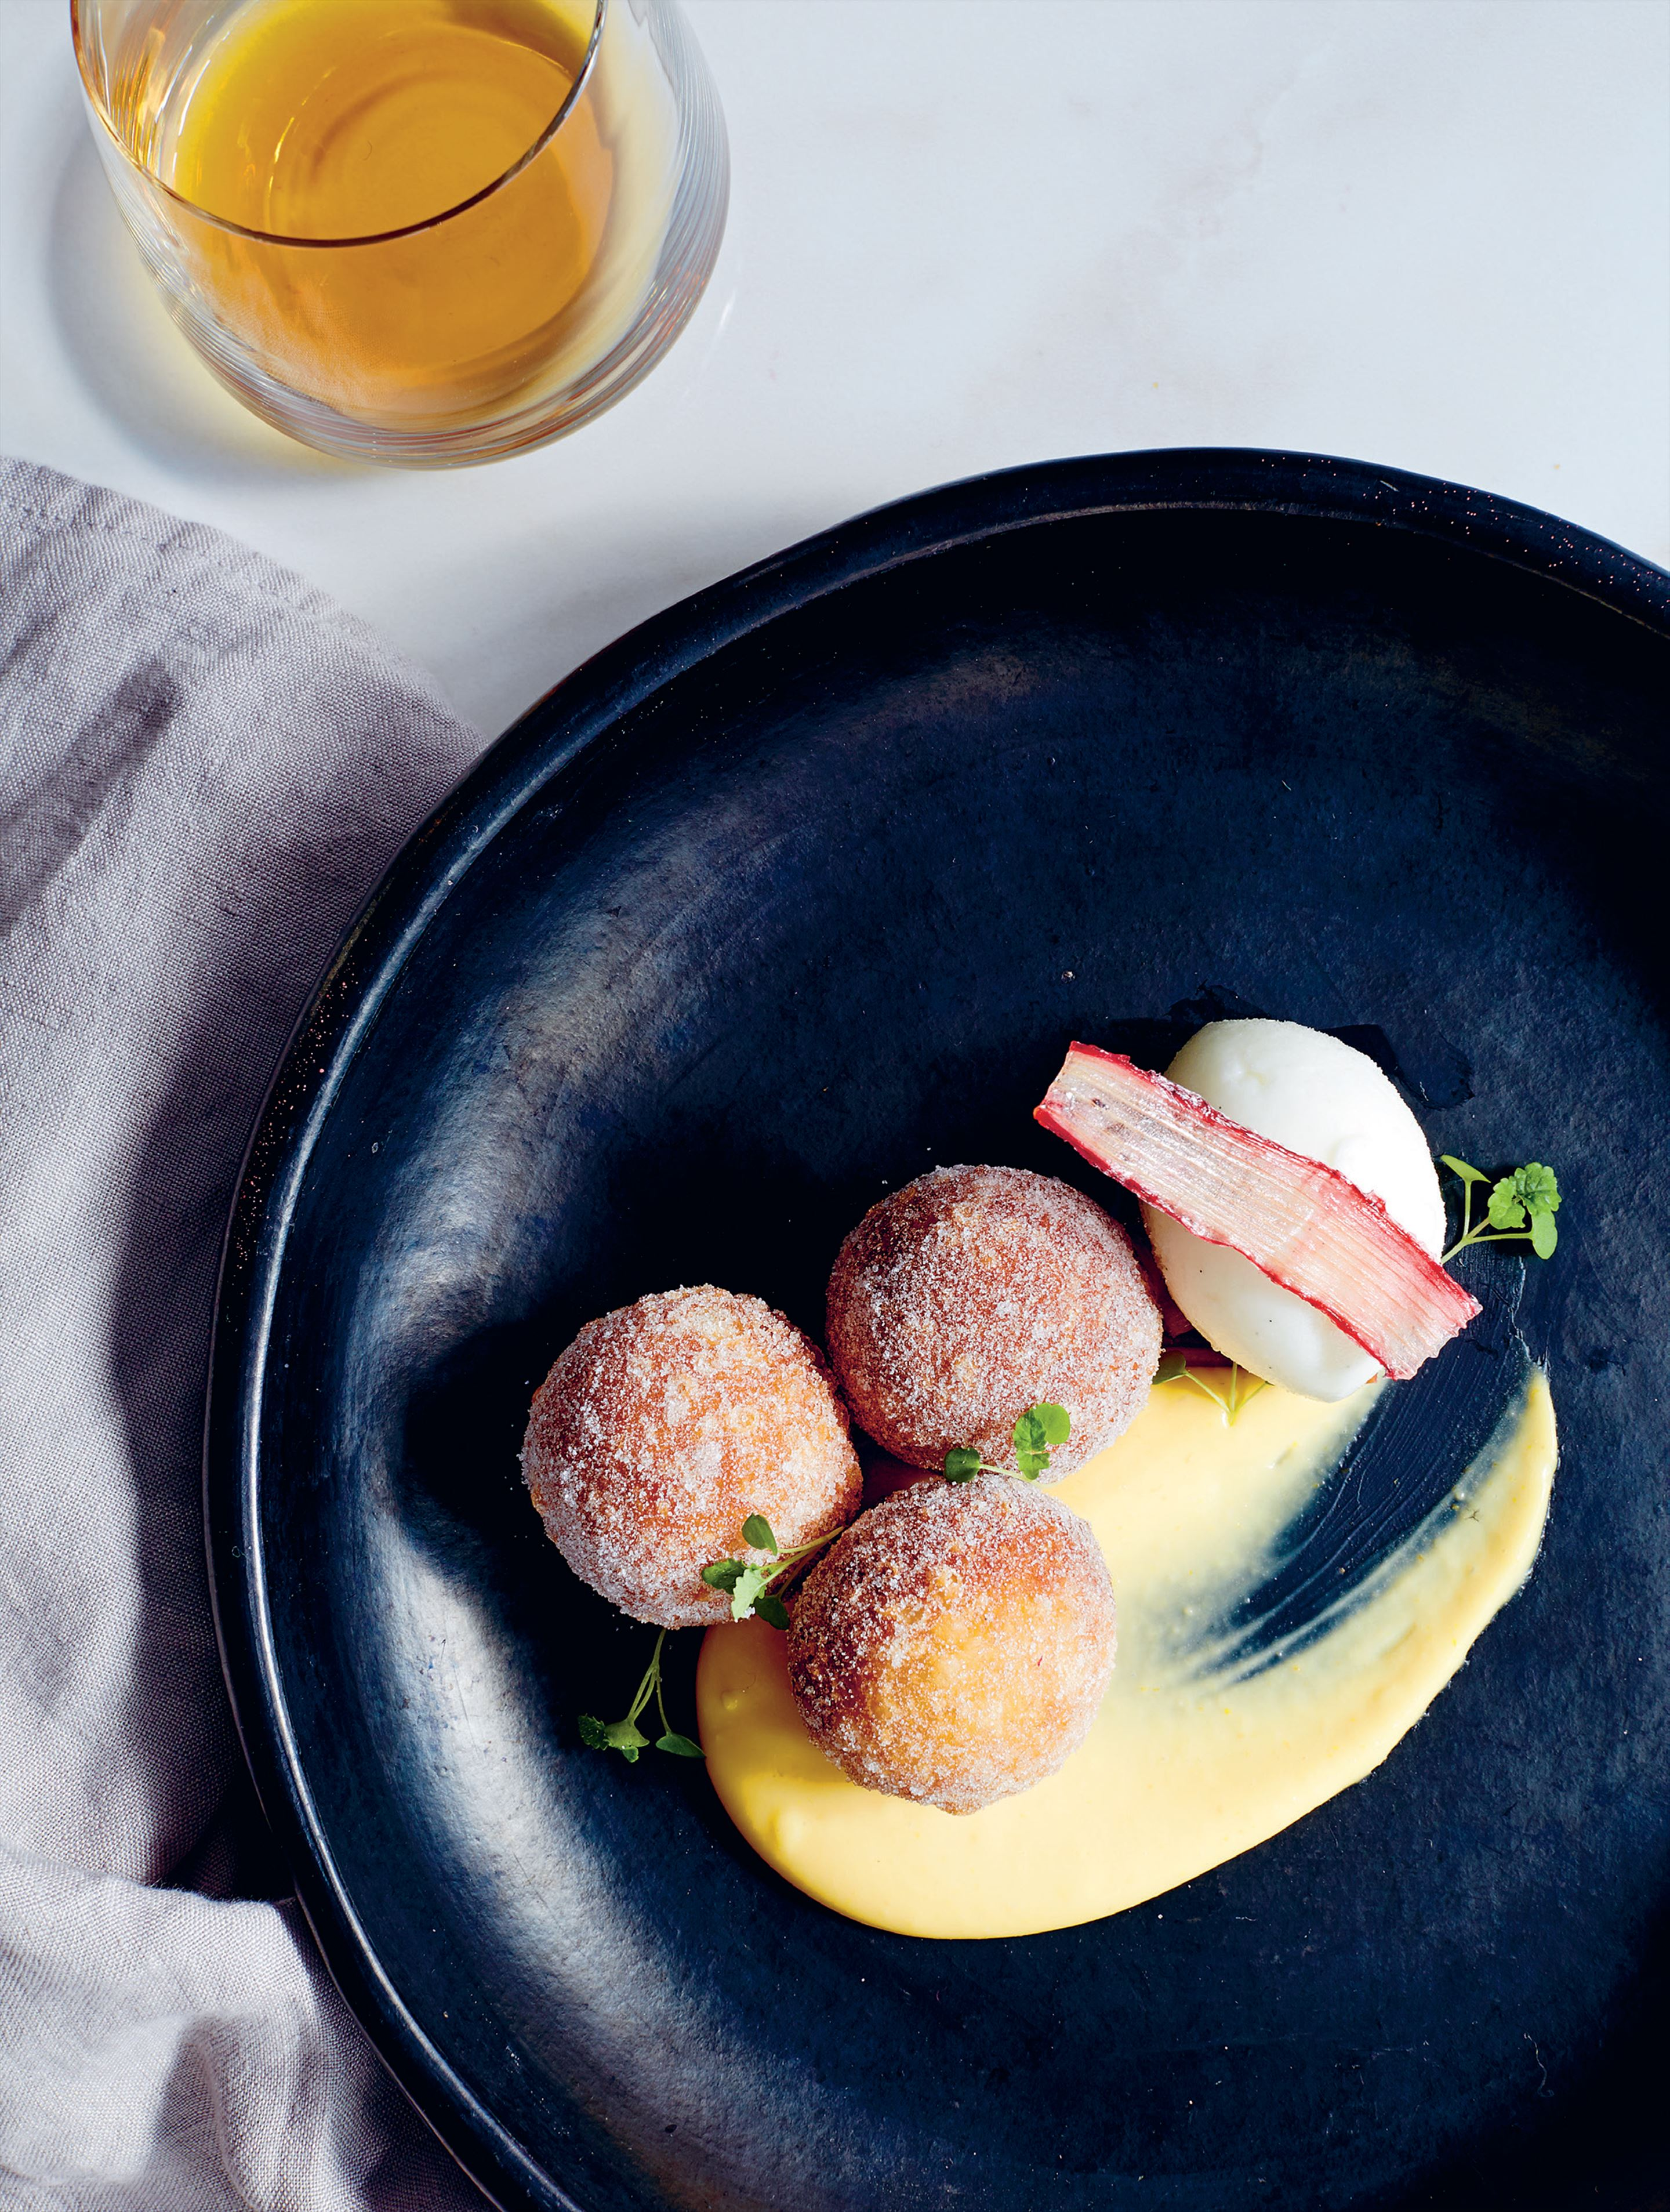 Rhubarb jam doughnuts with orange blossom custard & yoghurt sorbet